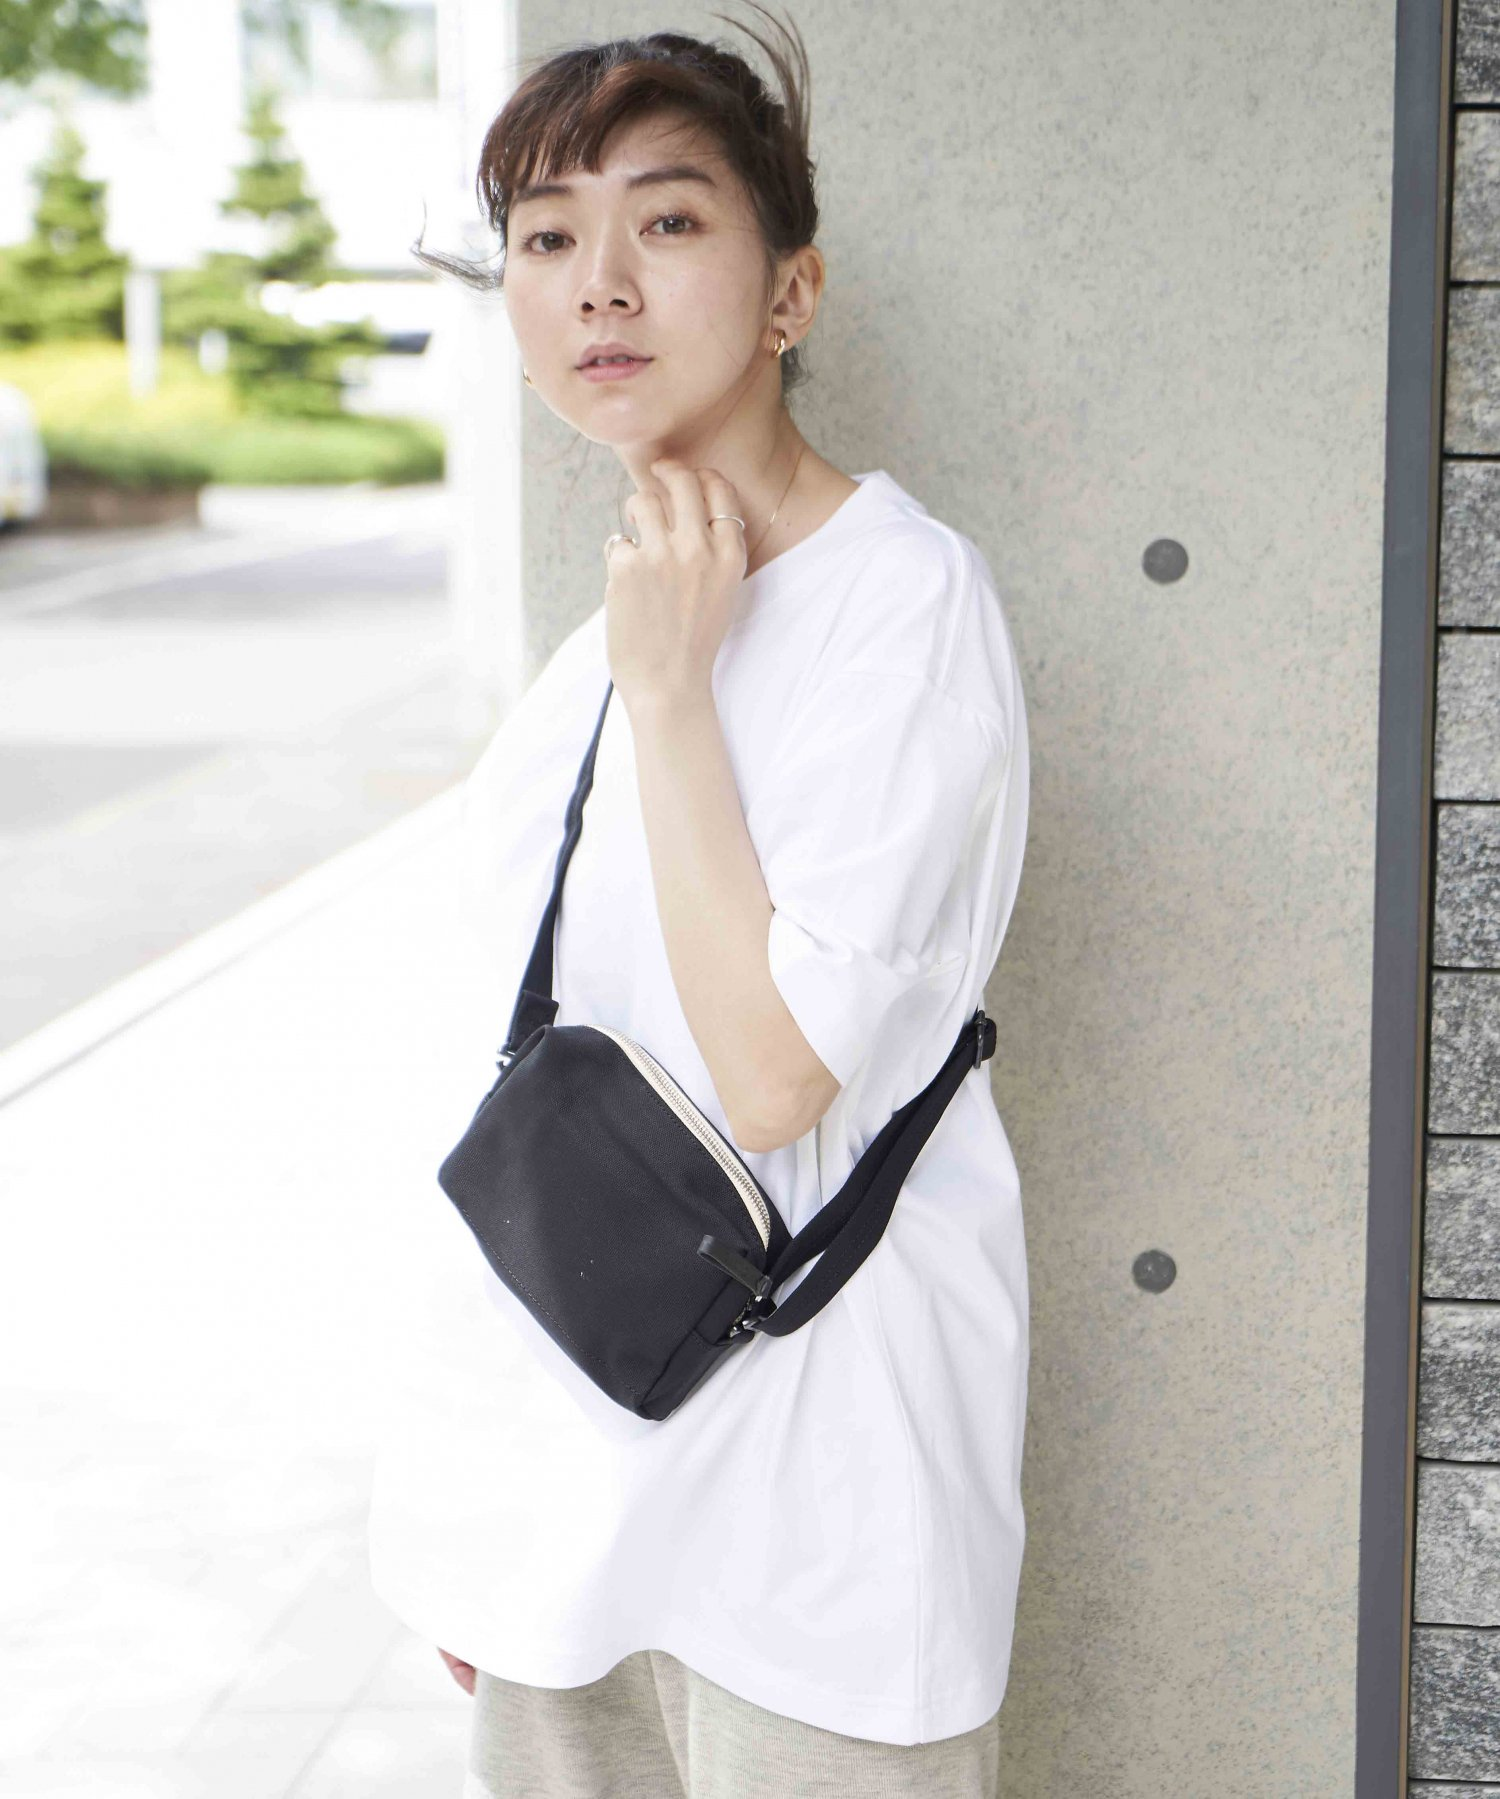 <img class='new_mark_img1' src='https://img.shop-pro.jp/img/new/icons15.gif' style='border:none;display:inline;margin:0px;padding:0px;width:auto;' />【QWSTION】HIP POUCH / BANANATEX® BLK